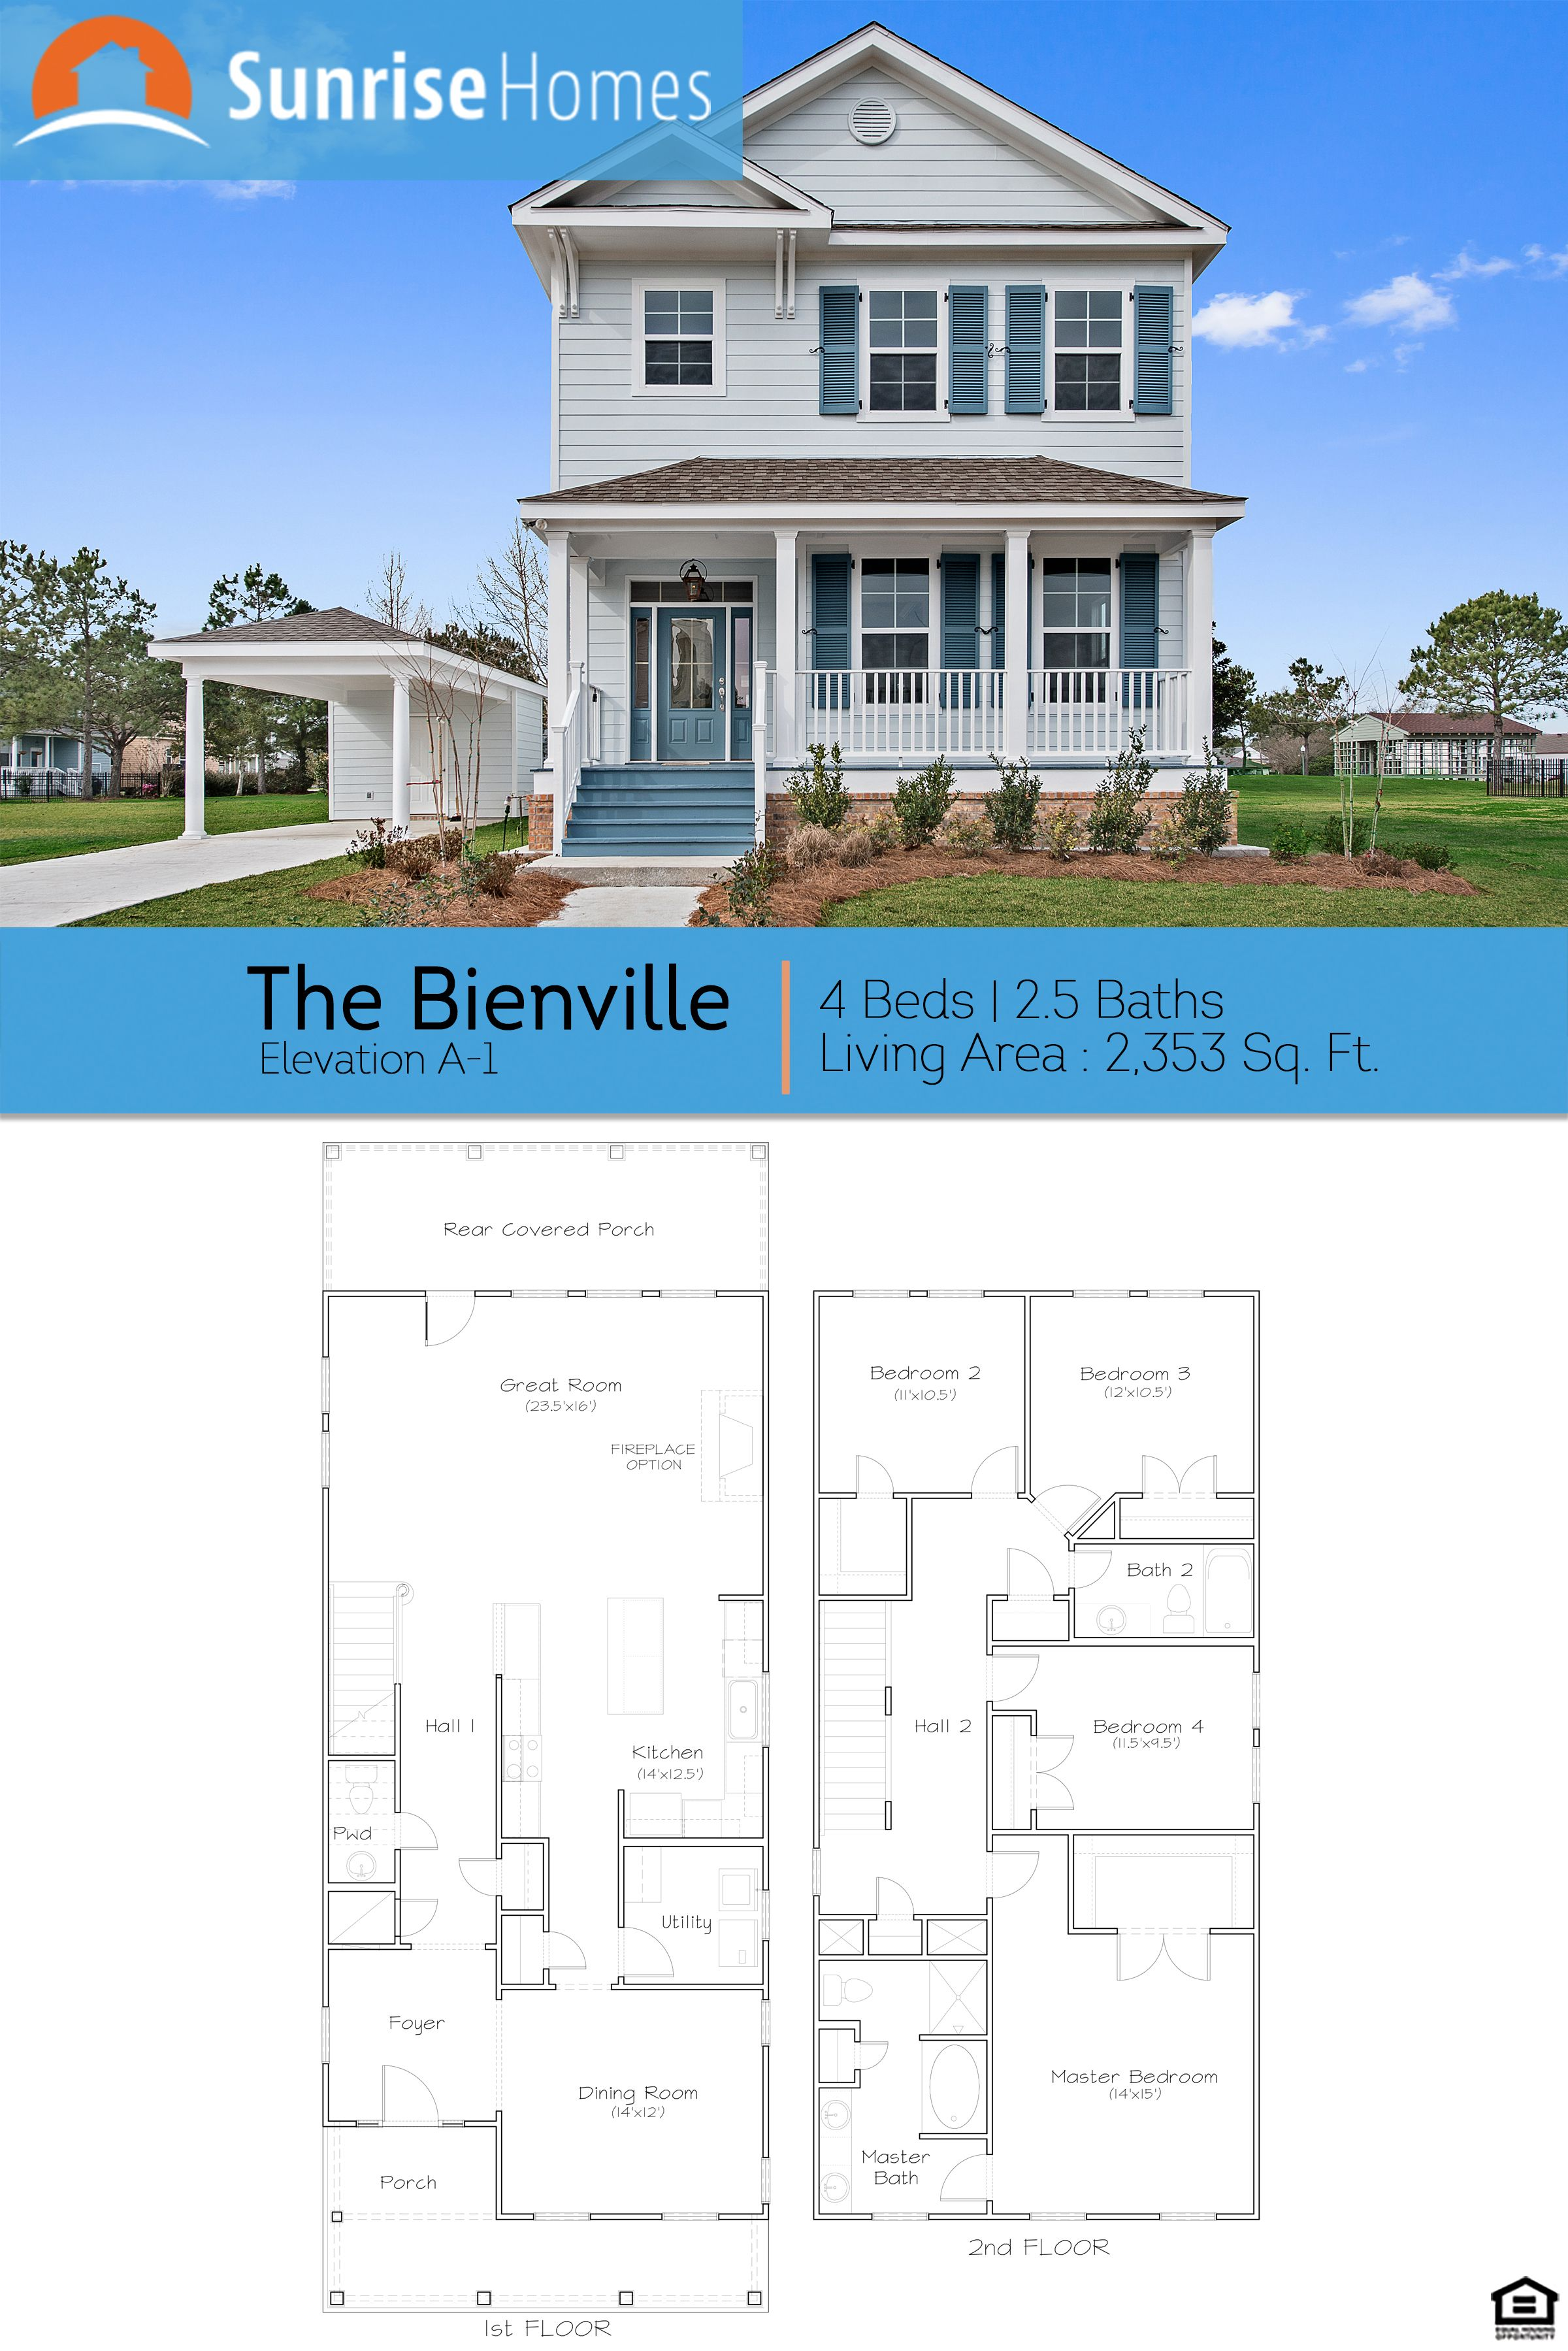 The Bienville, elevation A-1, is part of the Bienville ... on rehabilitation center floor plans, new orleans bedrooms, old new orleans house plans, lakeview home floor plans, carolina home floor plans, chesapeake home floor plans, austin home floor plans, hartford home floor plans, huntington home floor plans, massachusetts home floor plans, cape cod home house plans, va hospital floor plans, tampa bay home floor plans, new orleans inside homes, connecticut home floor plans, palm springs home floor plans, orleans builders floor plans, riverside home floor plans, bakersfield home floor plans, cambridge home floor plans,